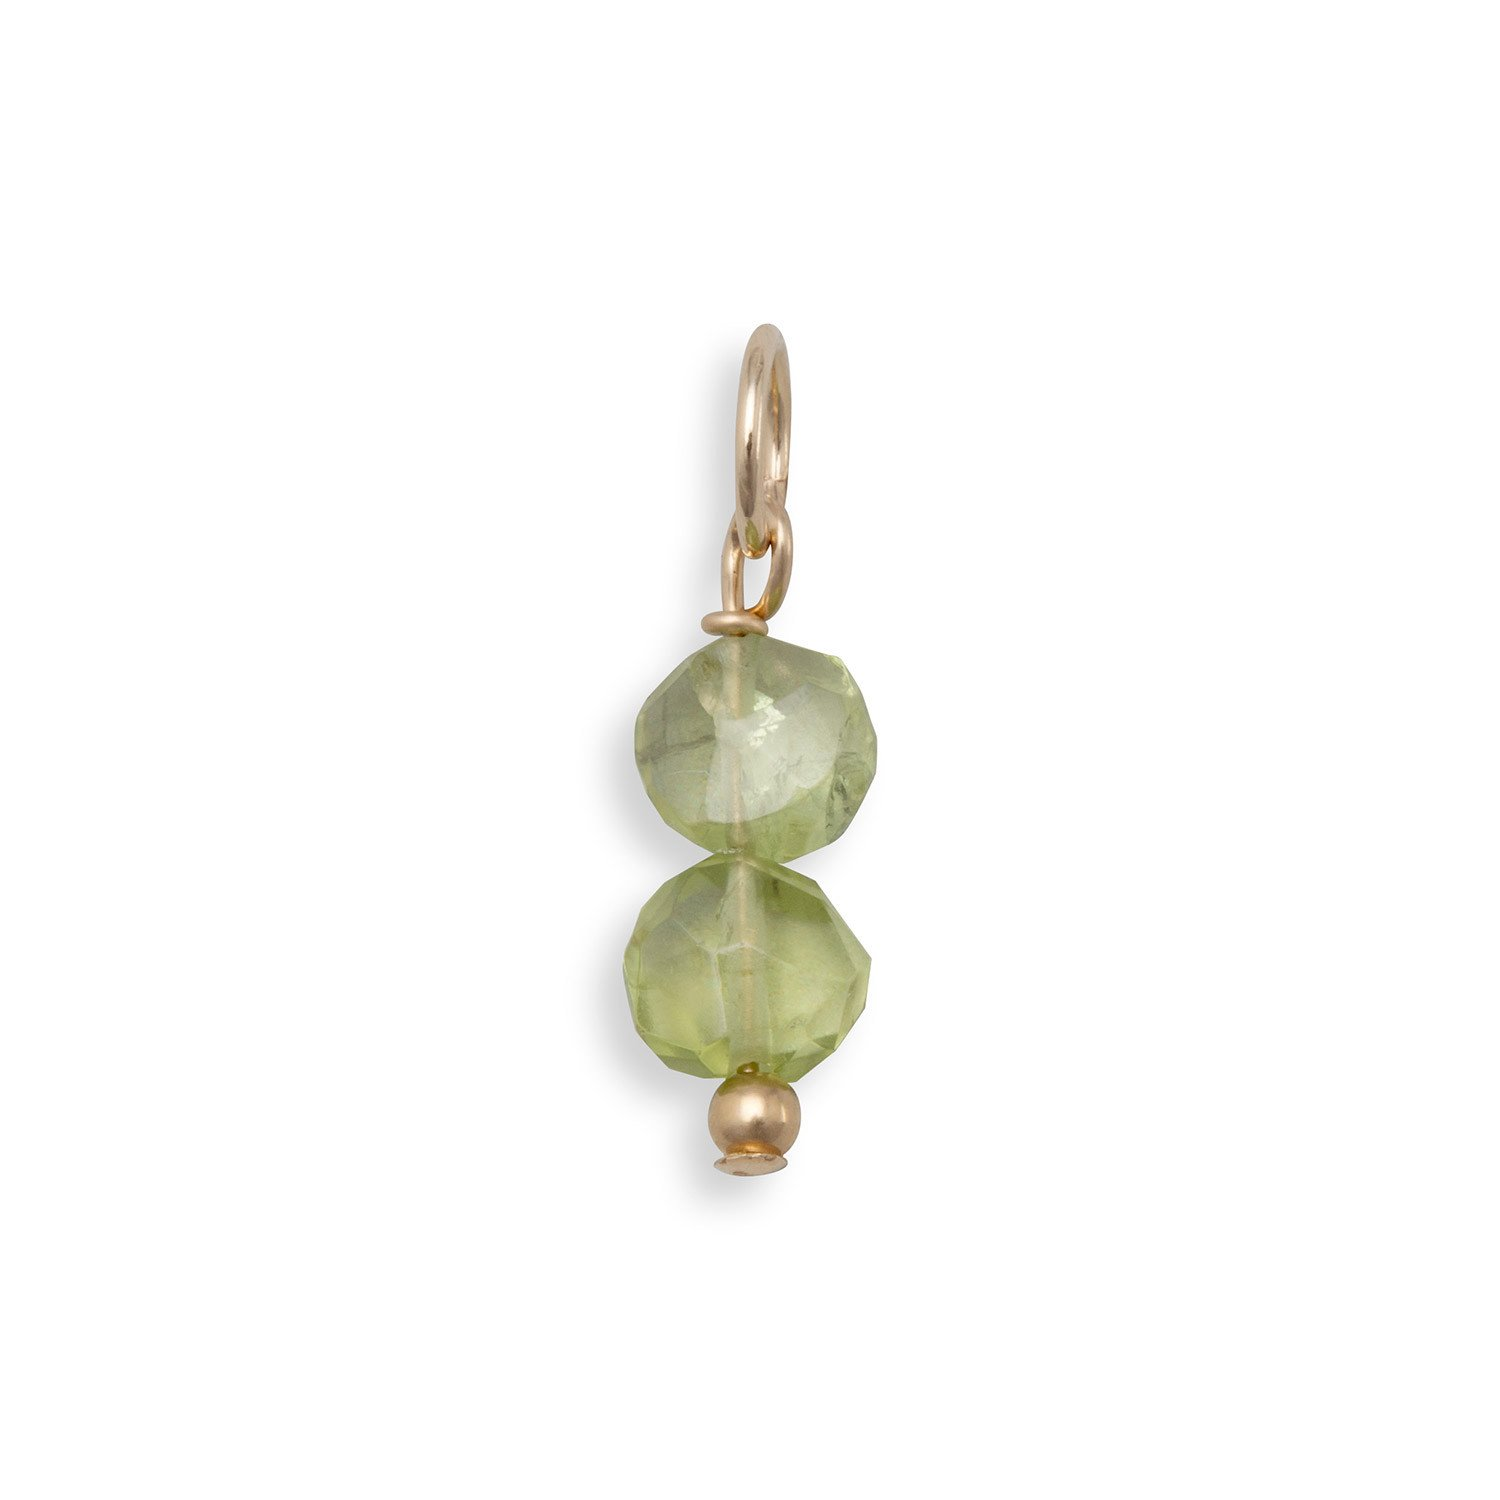 14/20 Gold Filled Peridot Coin Bead Charm – August Birthstone